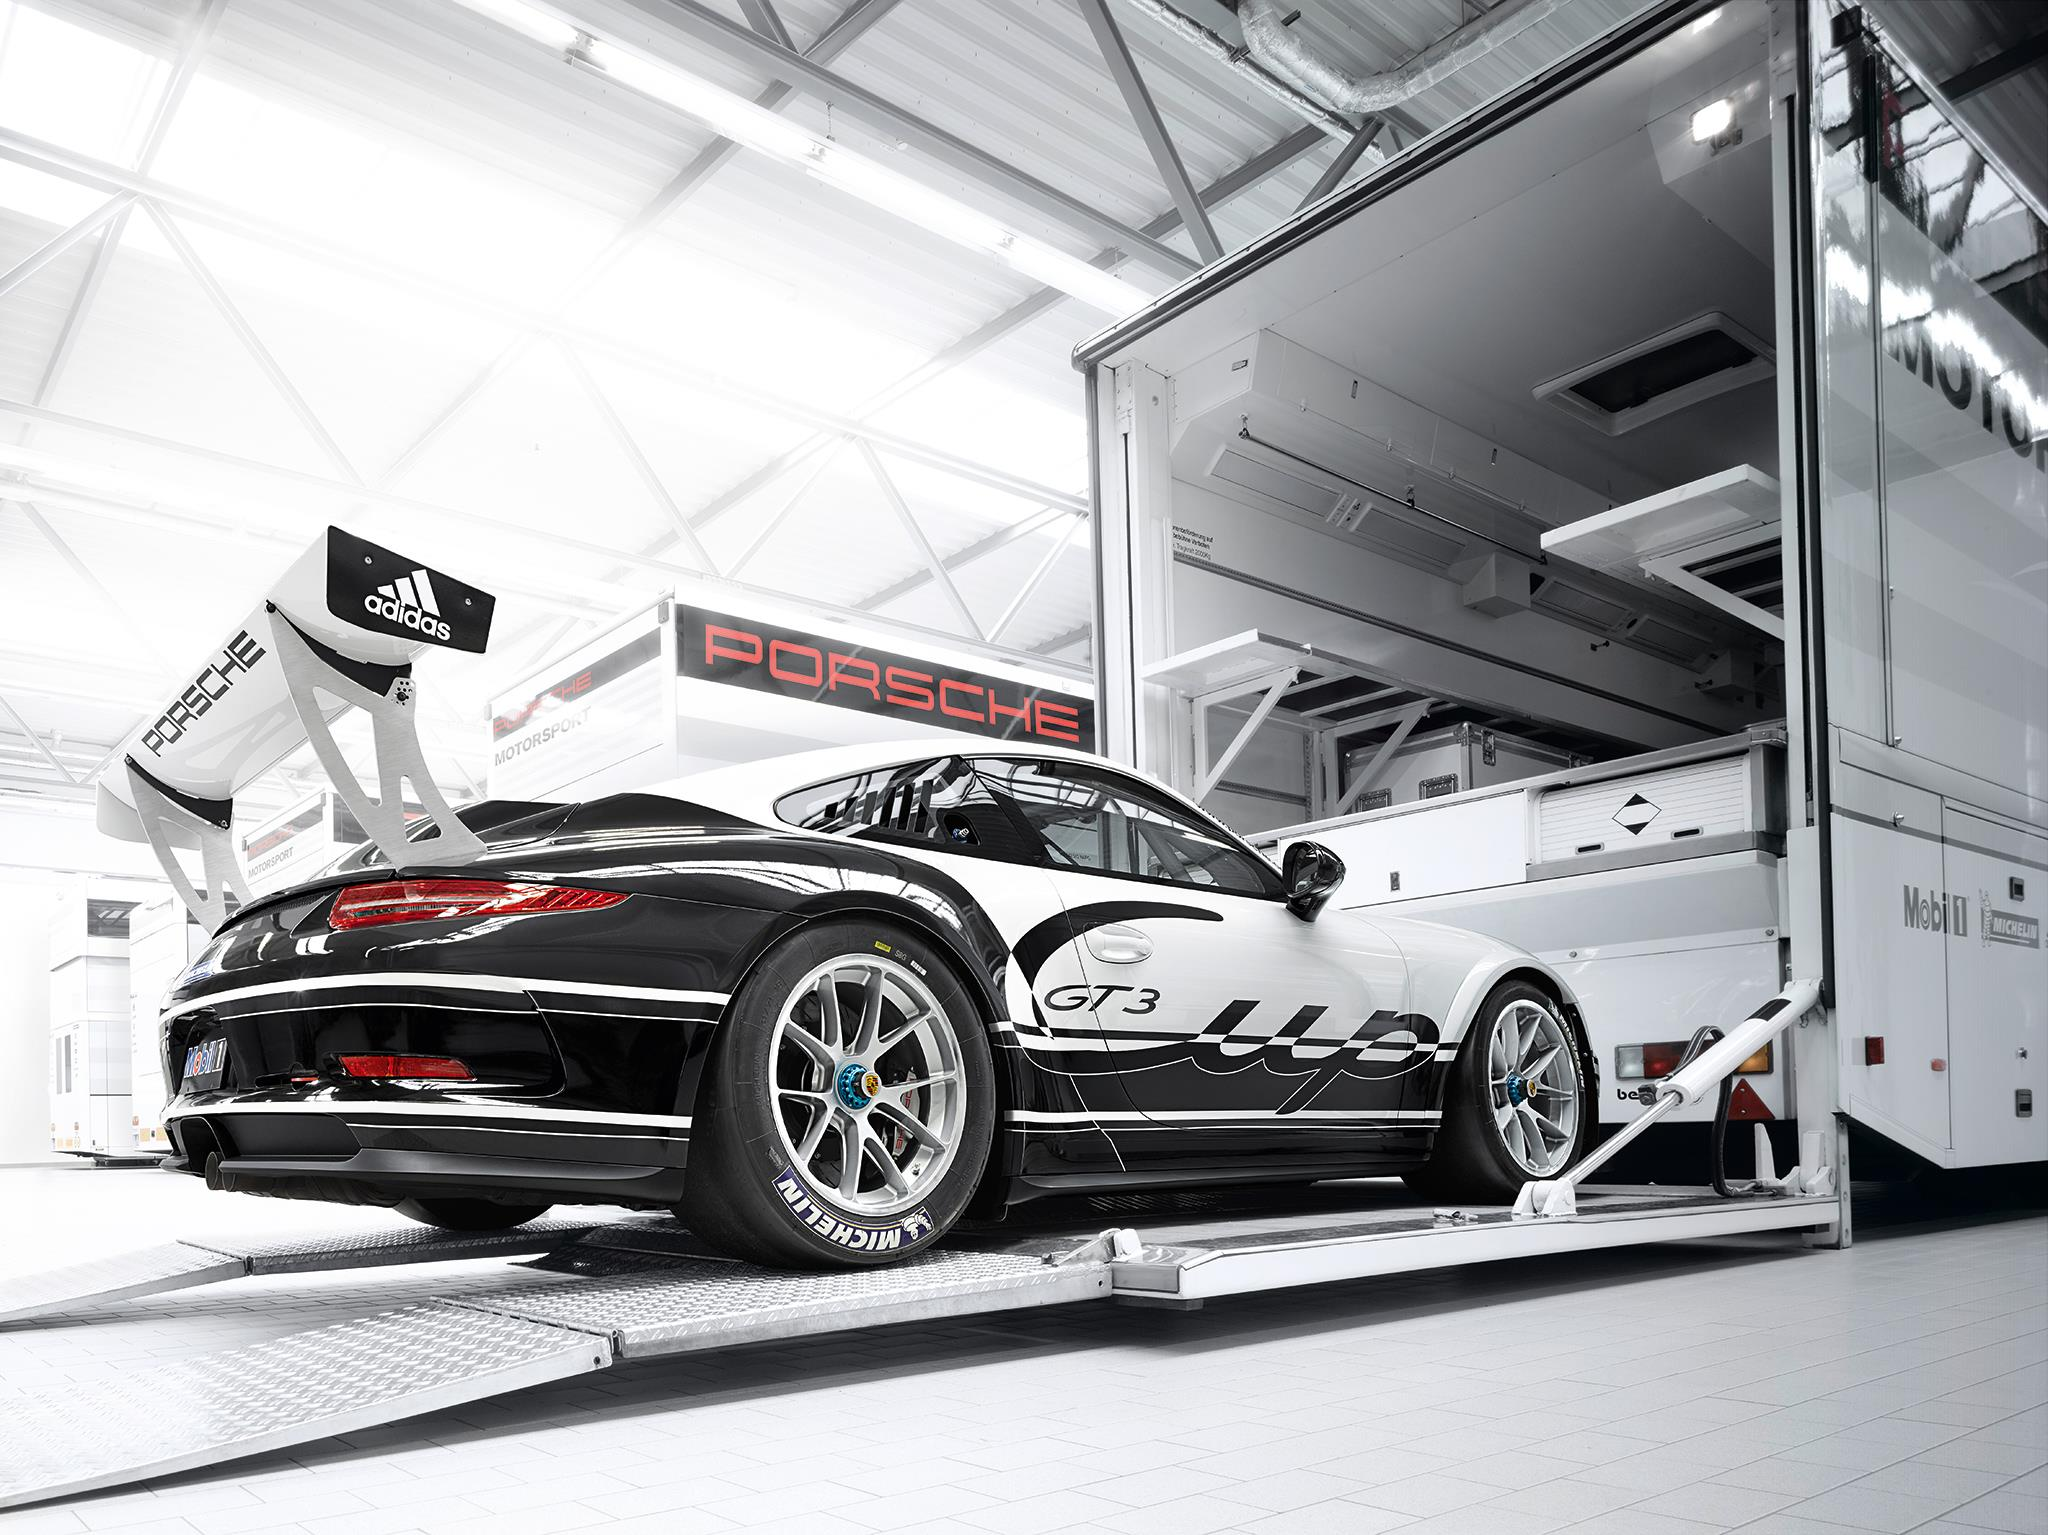 Pricing Pictures And Video Of The New 2013 911 Gt3 Cup